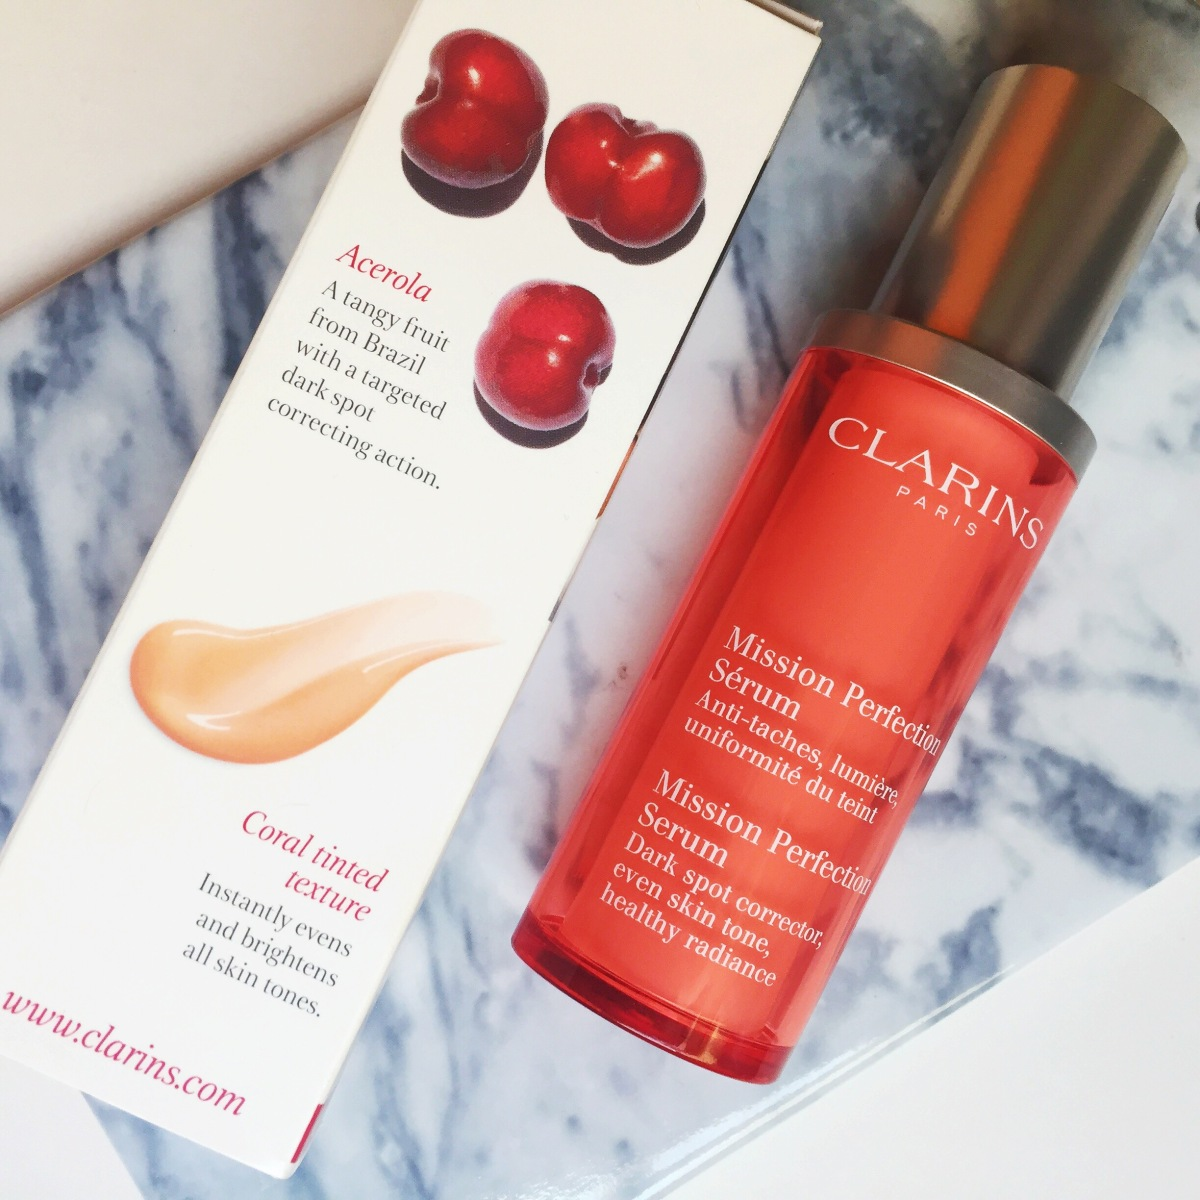 Review: Clarins Mission Perfection Serum